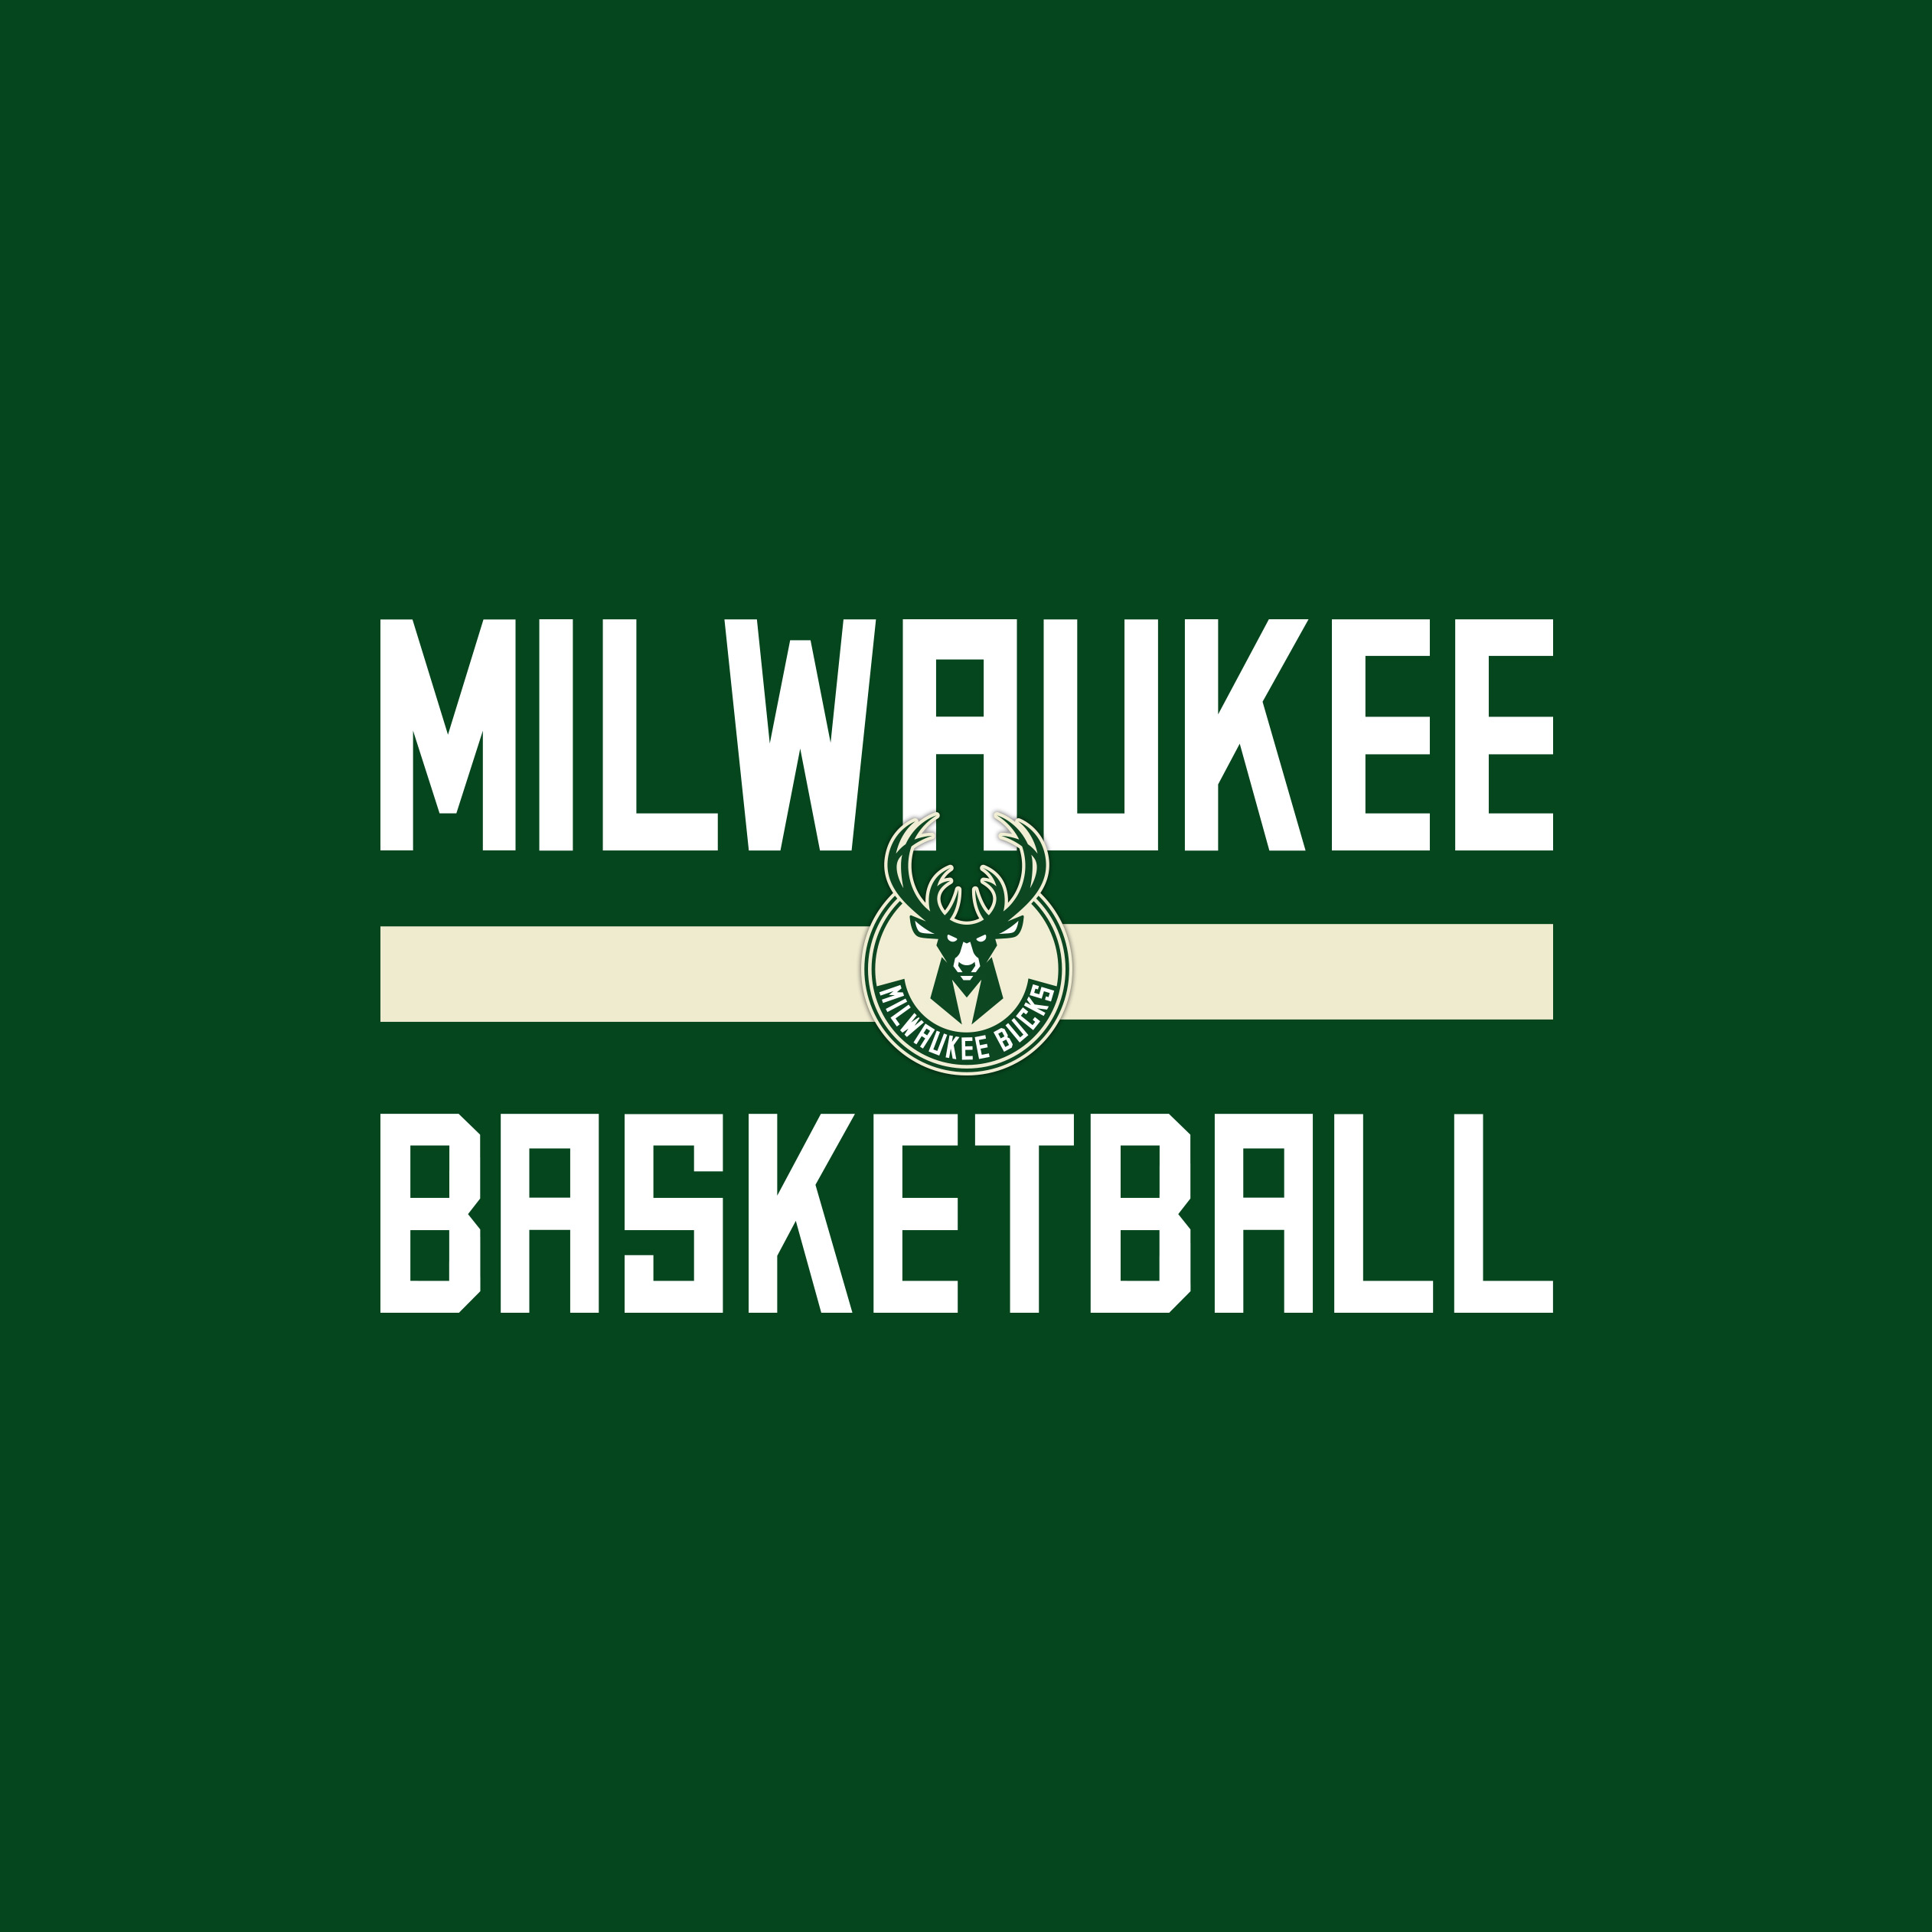 Download Milwaukee Bucks Wallpaper Iphone 8335 Hd Wallpaper